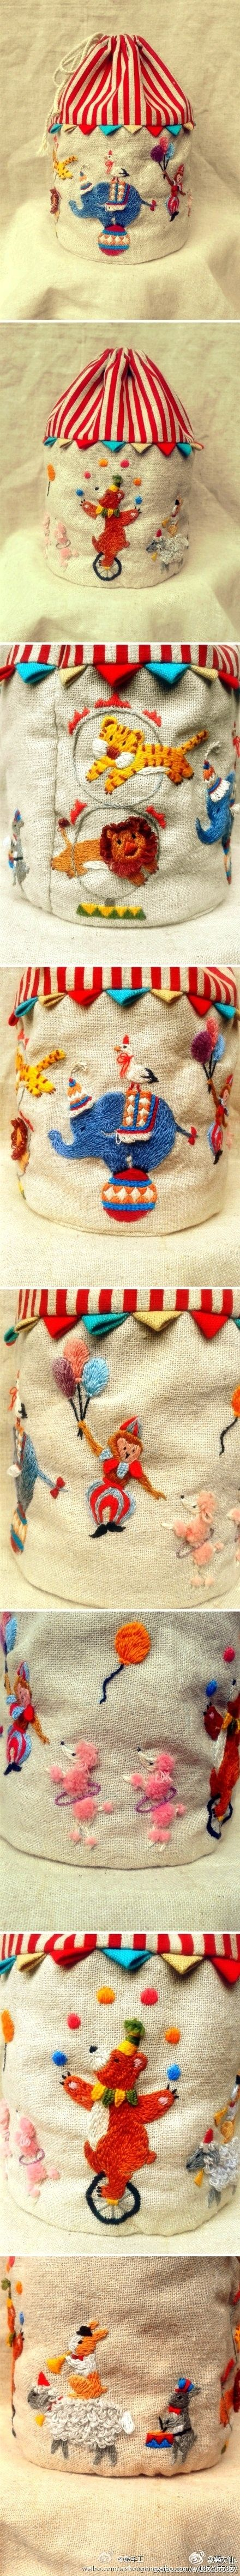 ♒ Enchanting Embroidery ♒   enchanting embroidered circus  :-)